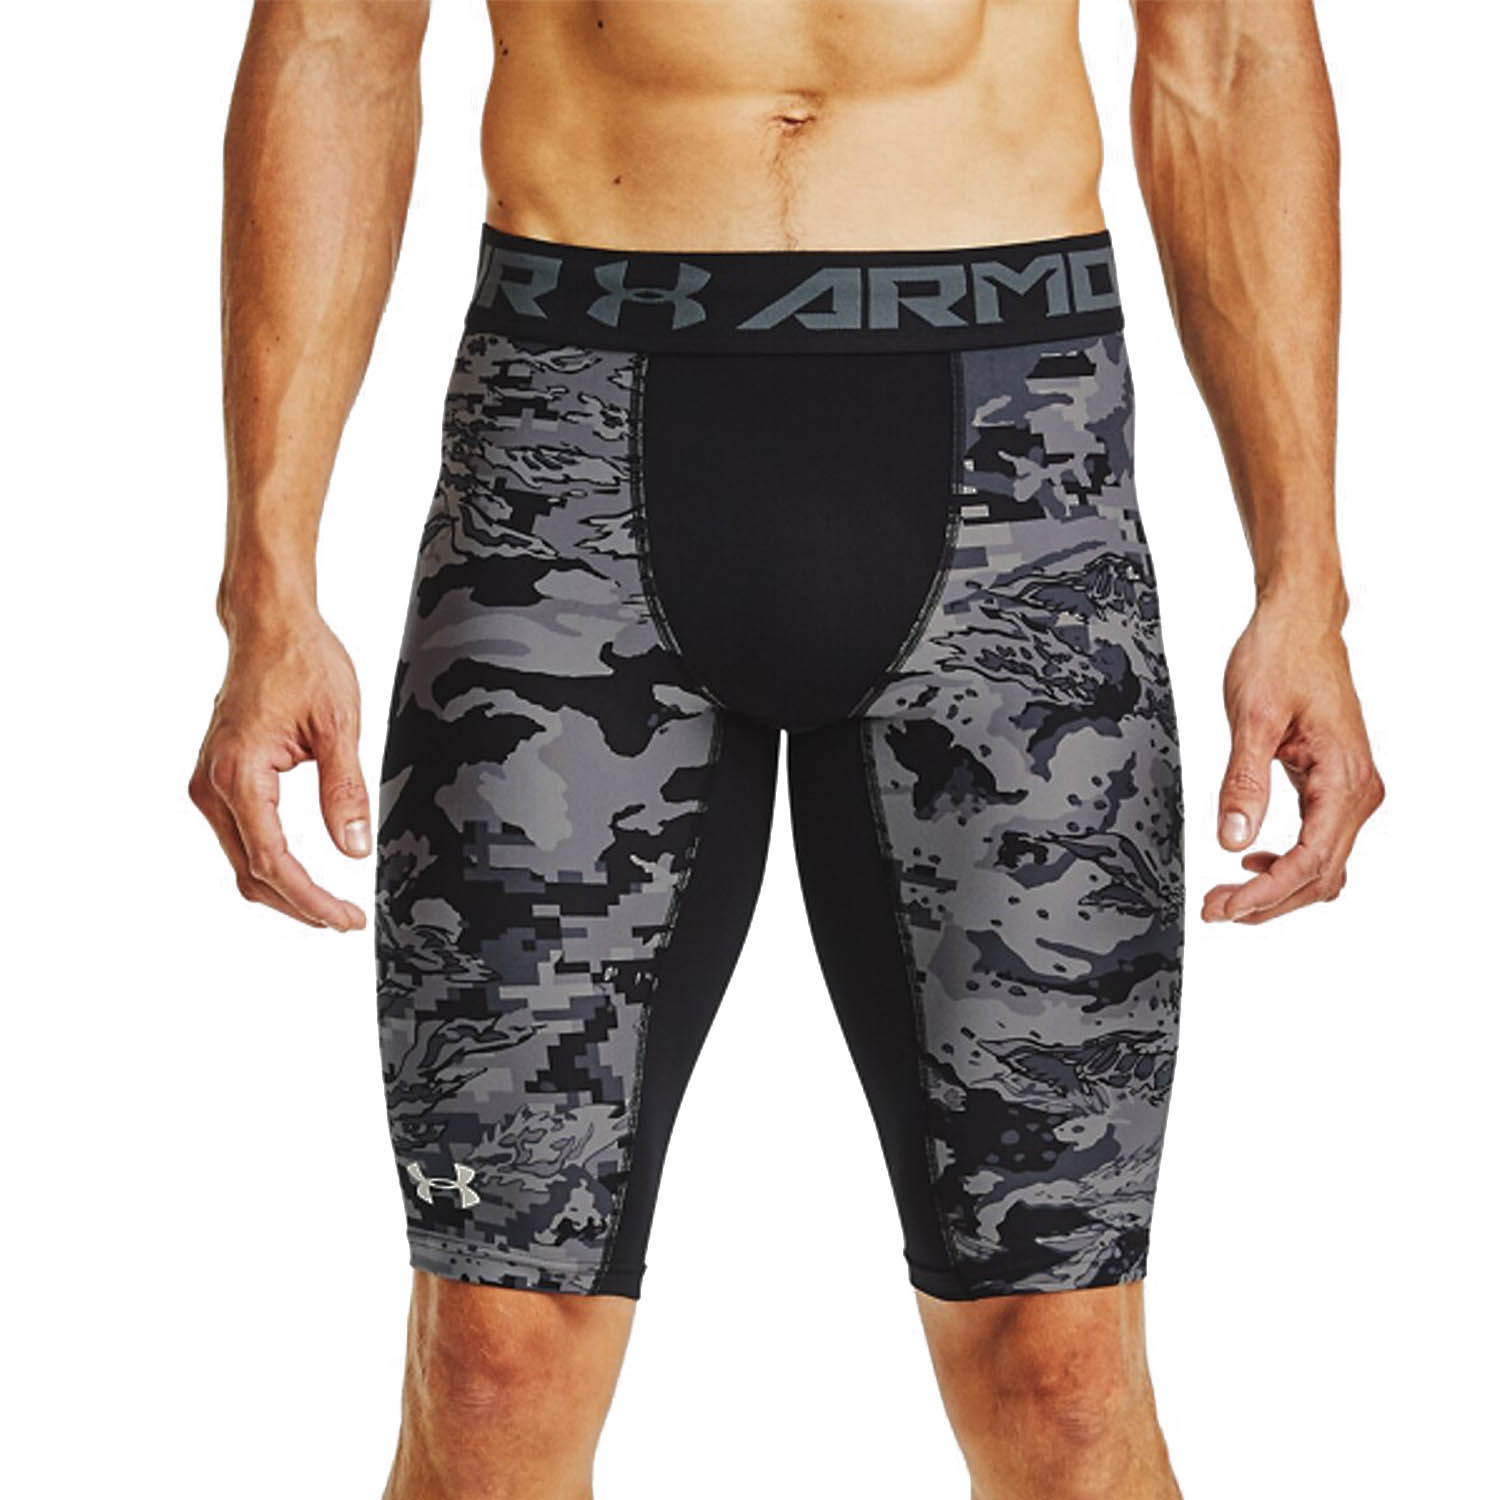 Under Armour Printed Short Tights - Black/White